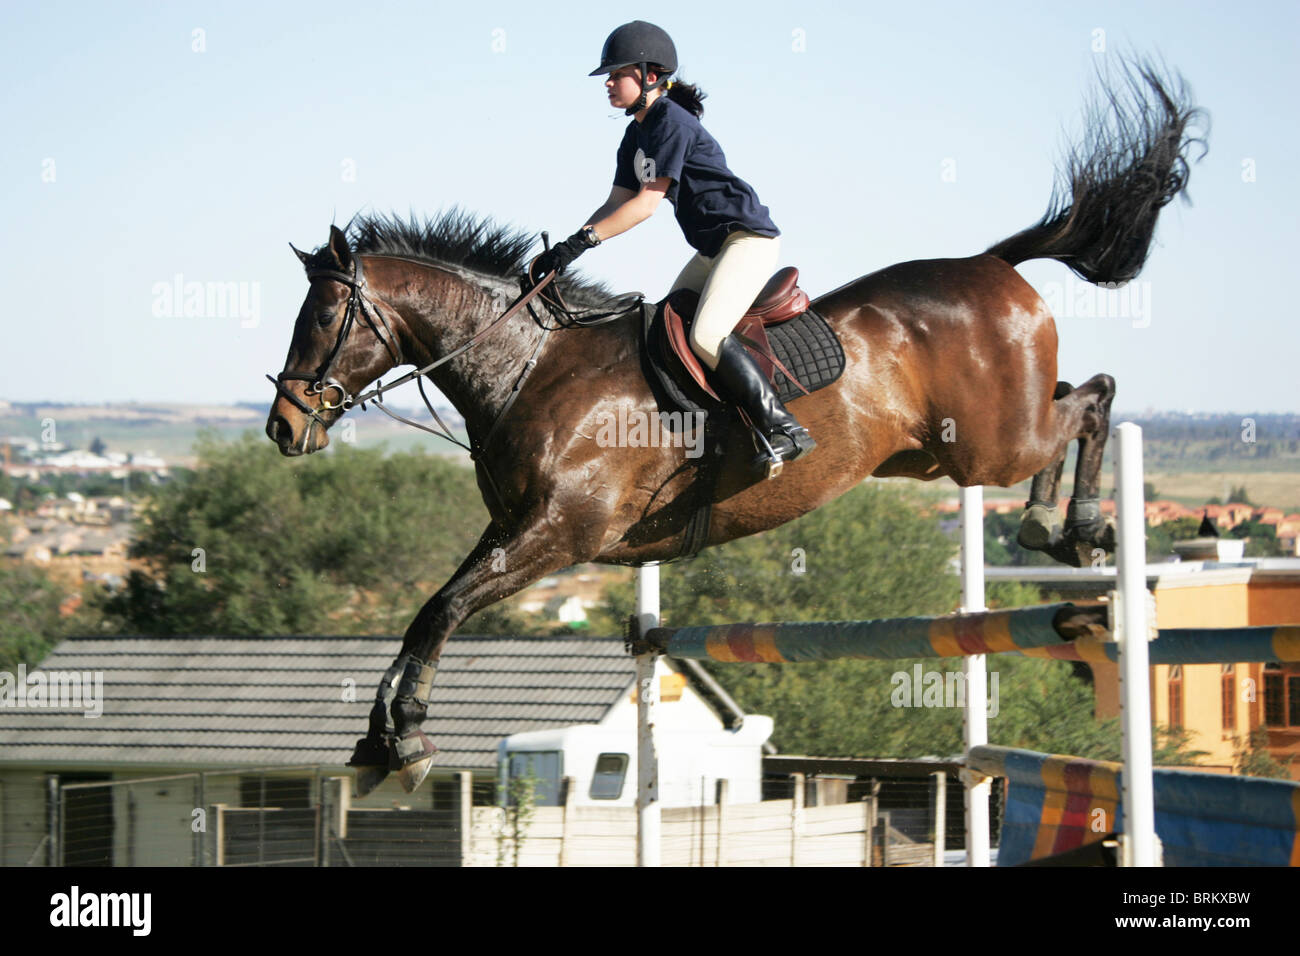 Horse with rider jumping over obstacle during practise routine - Stock Image